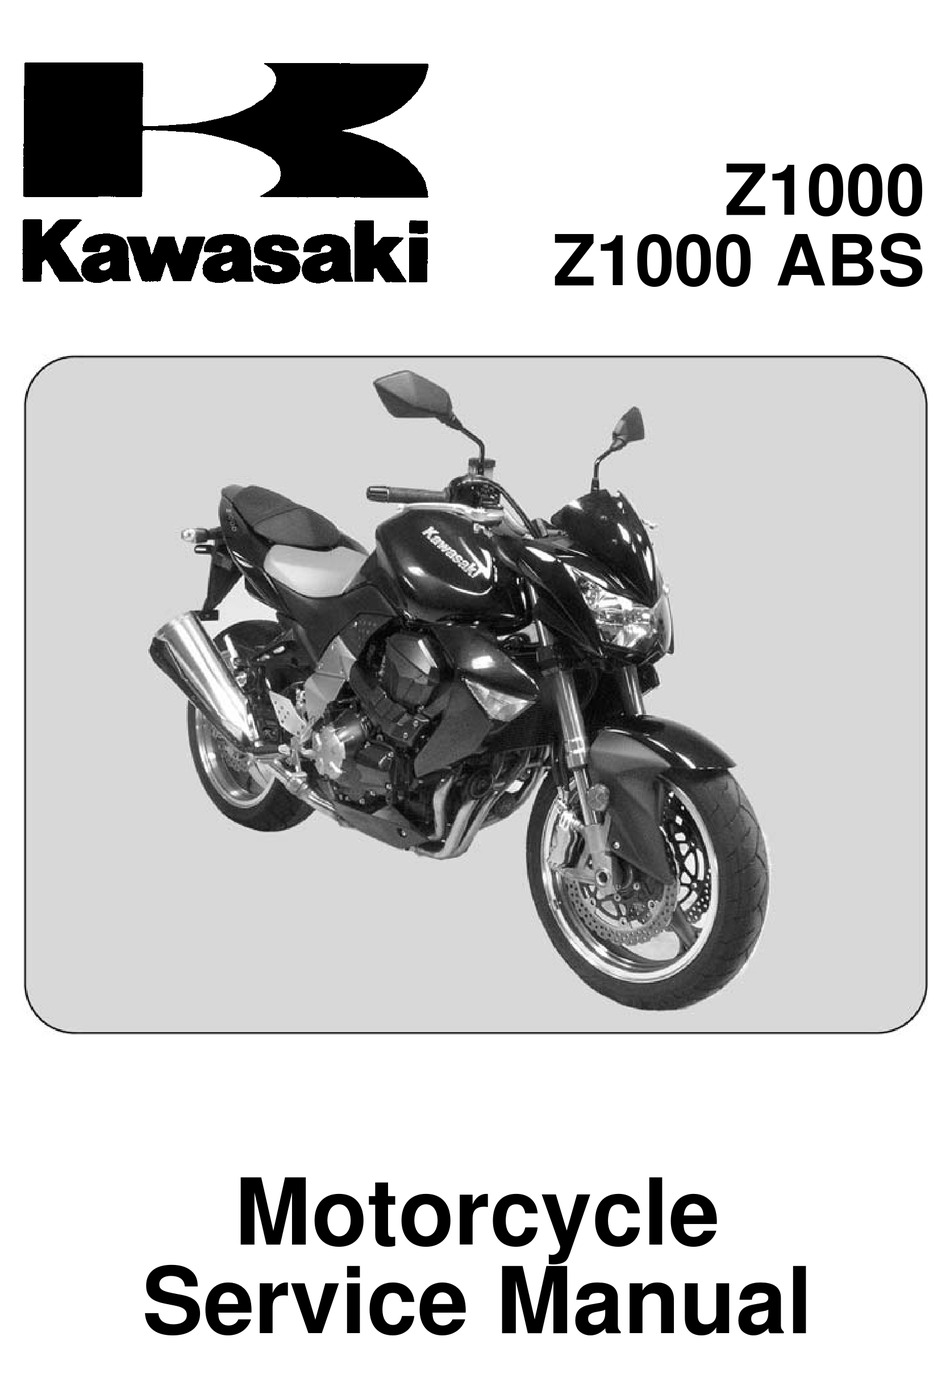 Kawasaki Z1000 Service Manual Pdf Download Manualslib